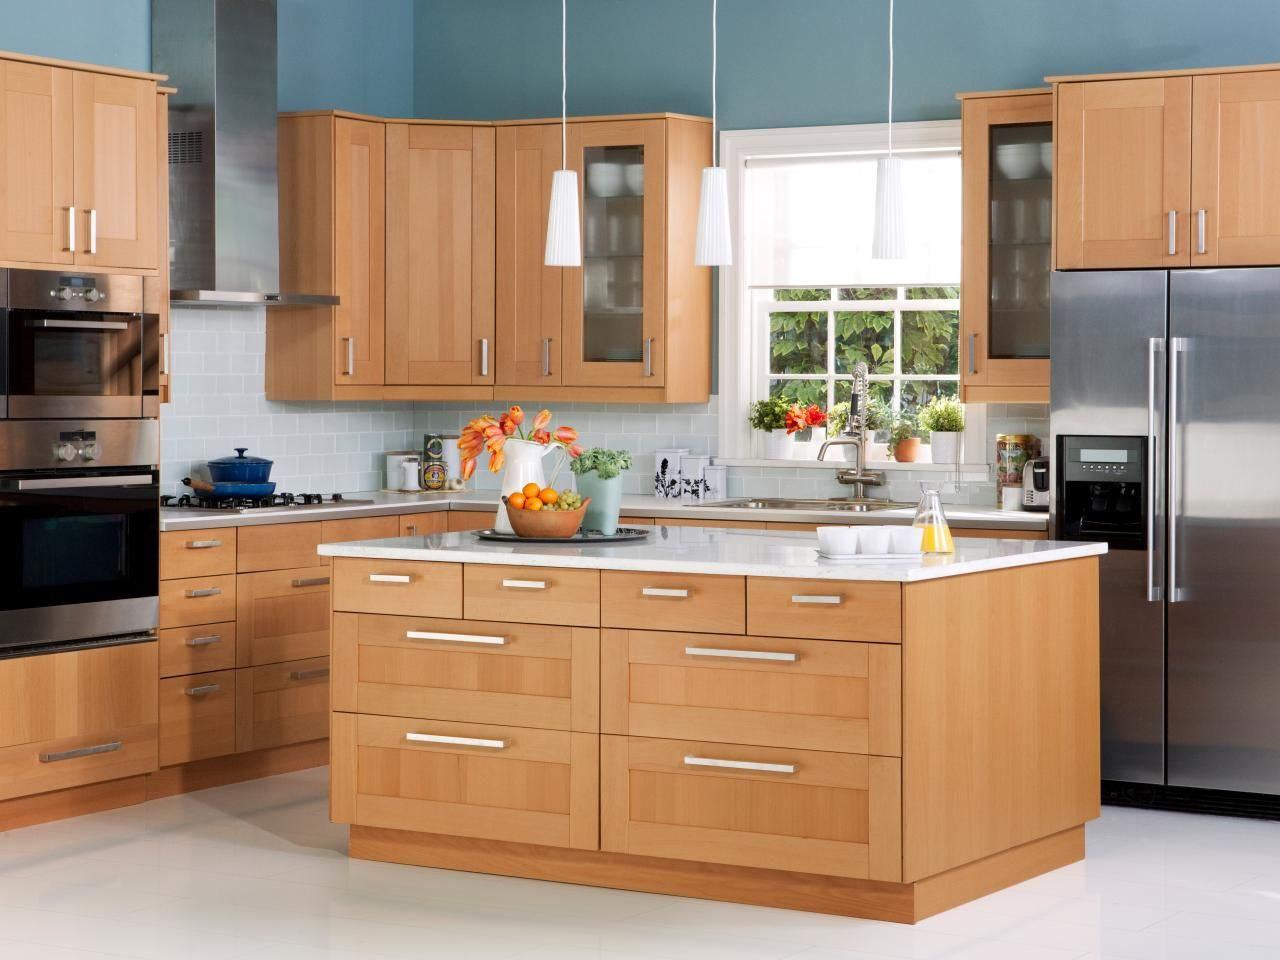 Best Kitchen Gallery: Ikea Kitchen Cabi S Cost Estimate Fantastic Kitchen Ideas of Ikea Kitchen Cabinets Cost on cal-ite.com